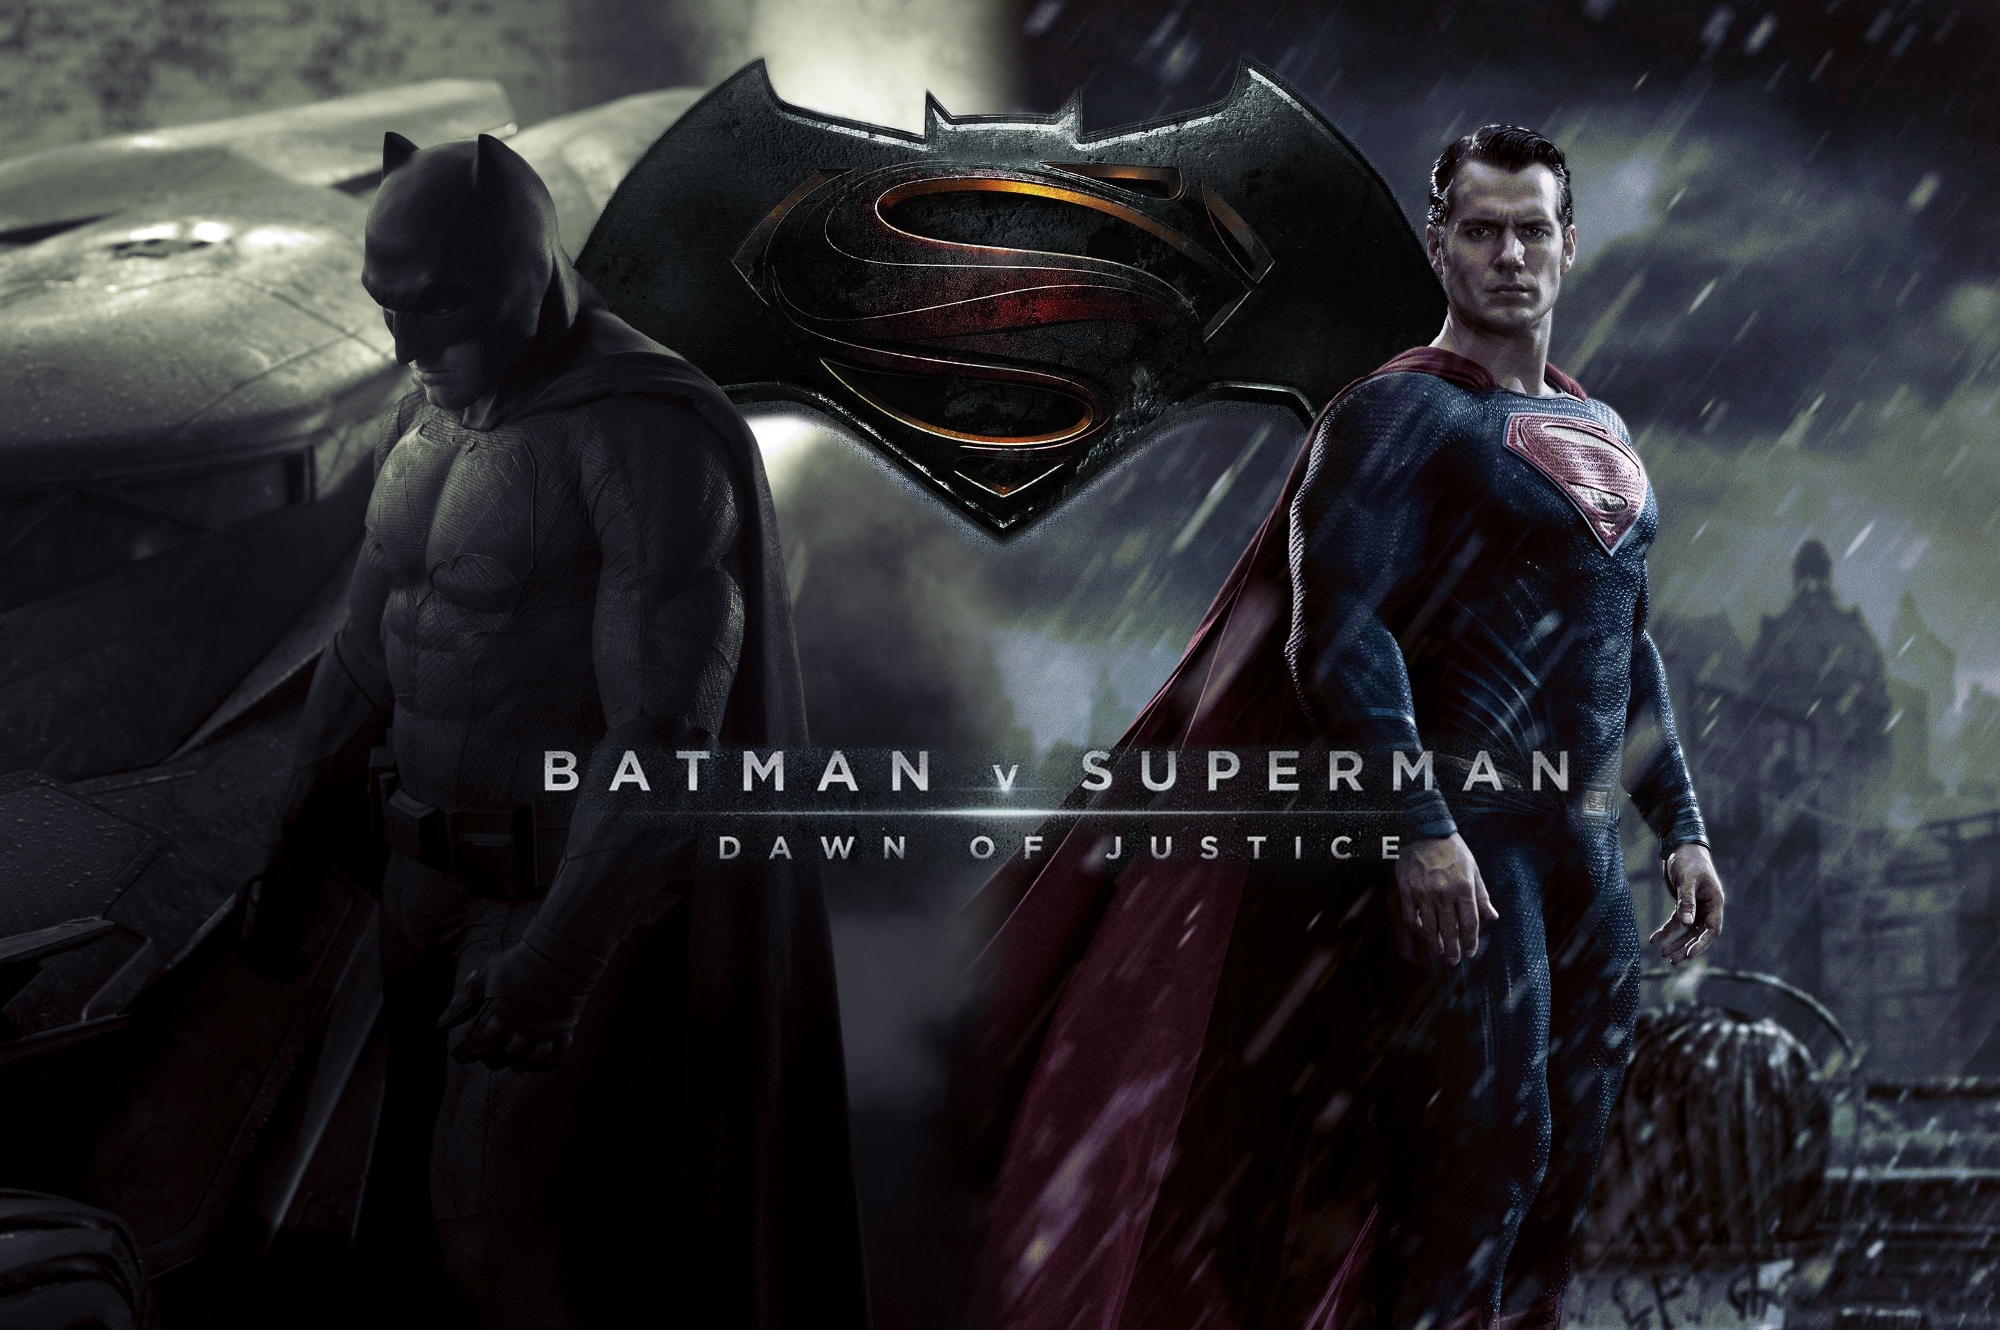 batman vs superman Should Warner Bros. Have Waited Before Confirming Zack Snyder for Justice League?